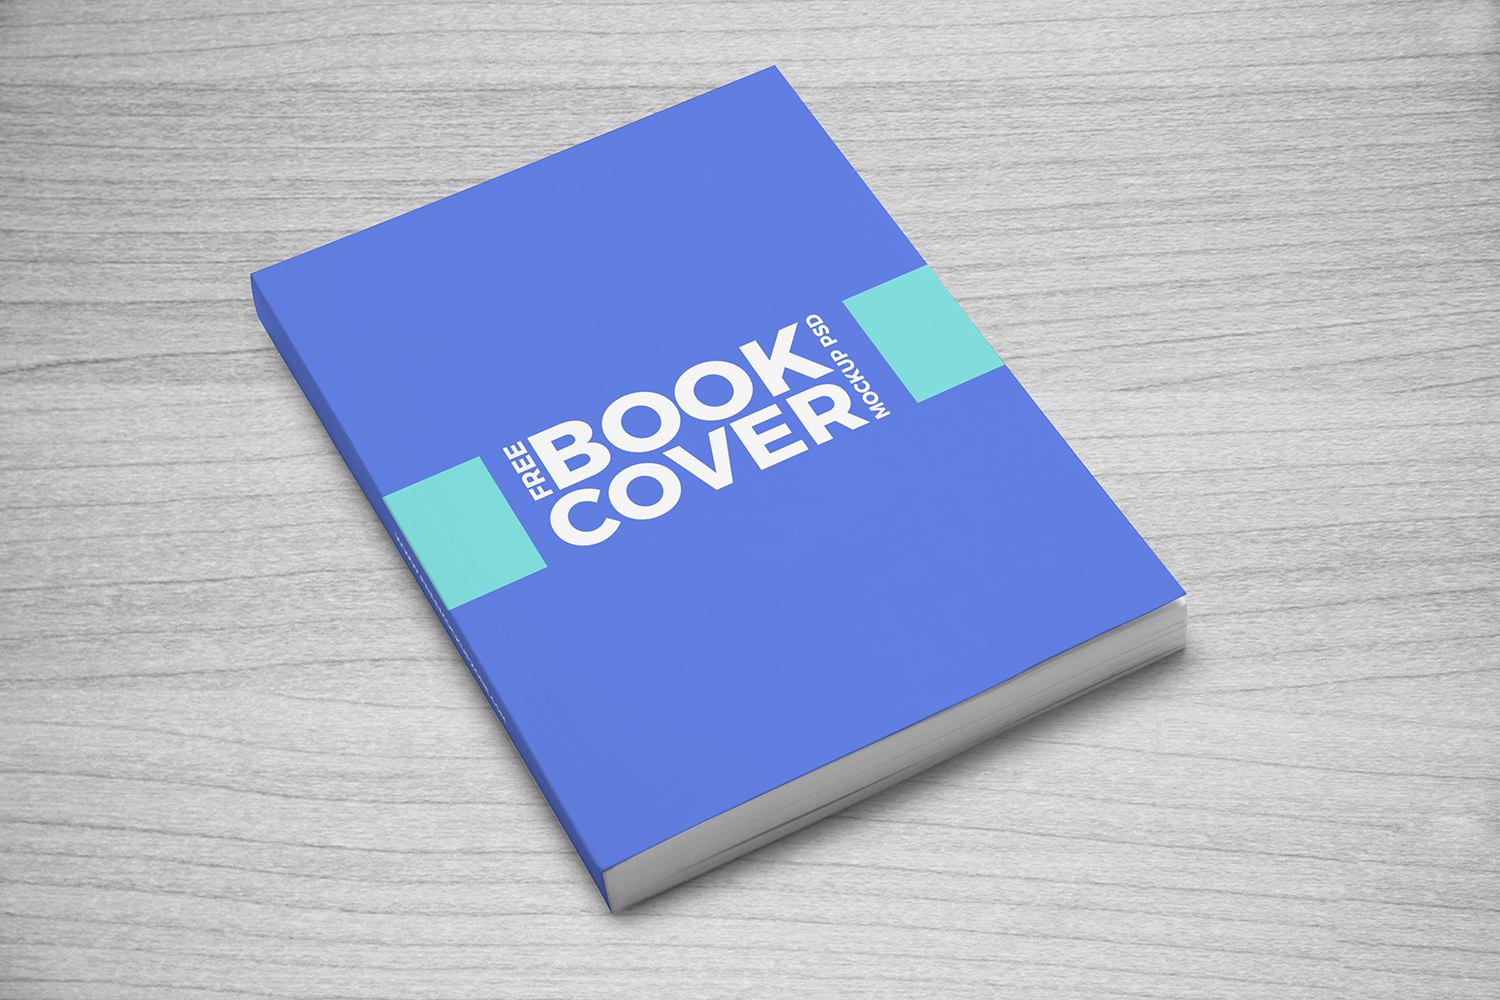 Book Cover Mockup PSD